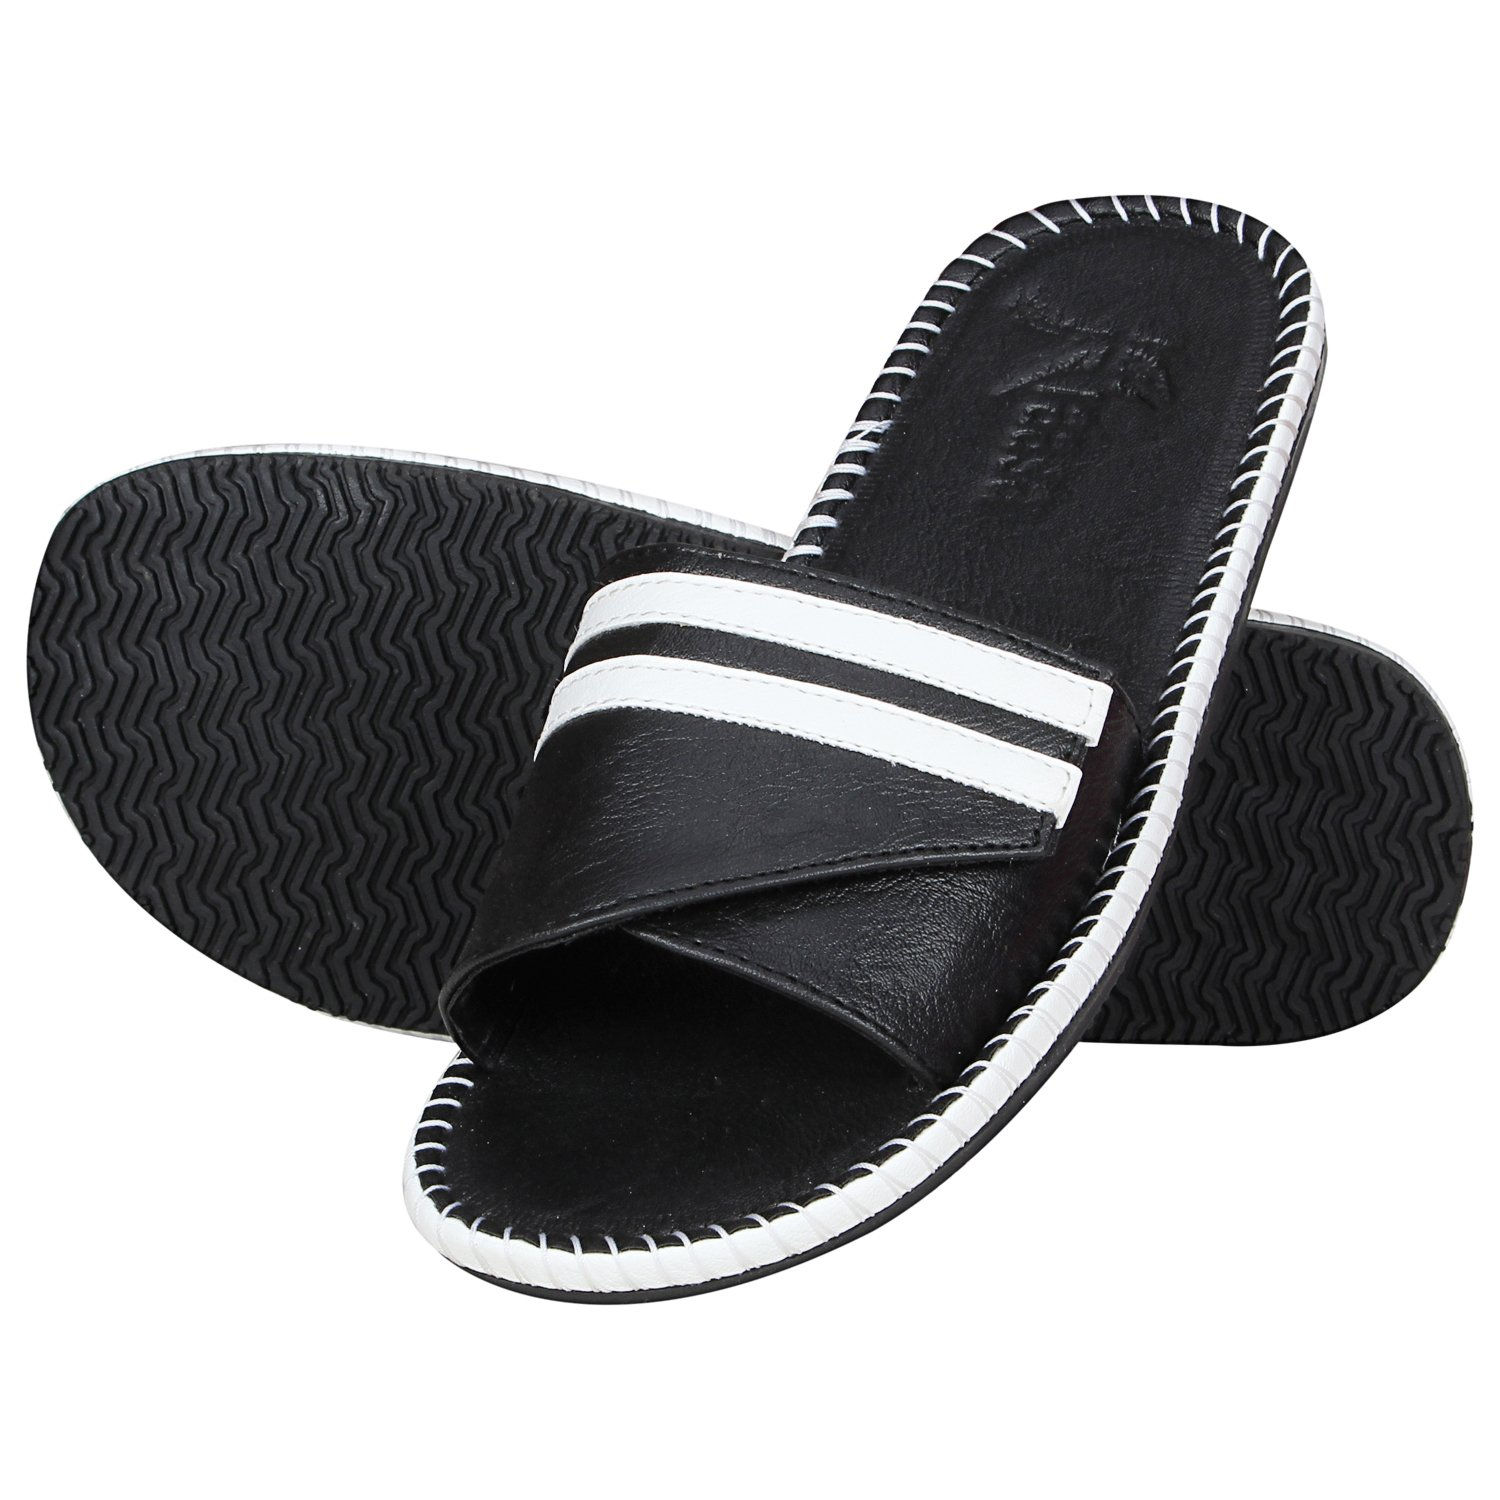 03b8e0680c7fe8 Kraasa 5164 NewStyle Casual Slippers   Flip-Flops  Buy Online at Low Prices  in India - Amazon.in